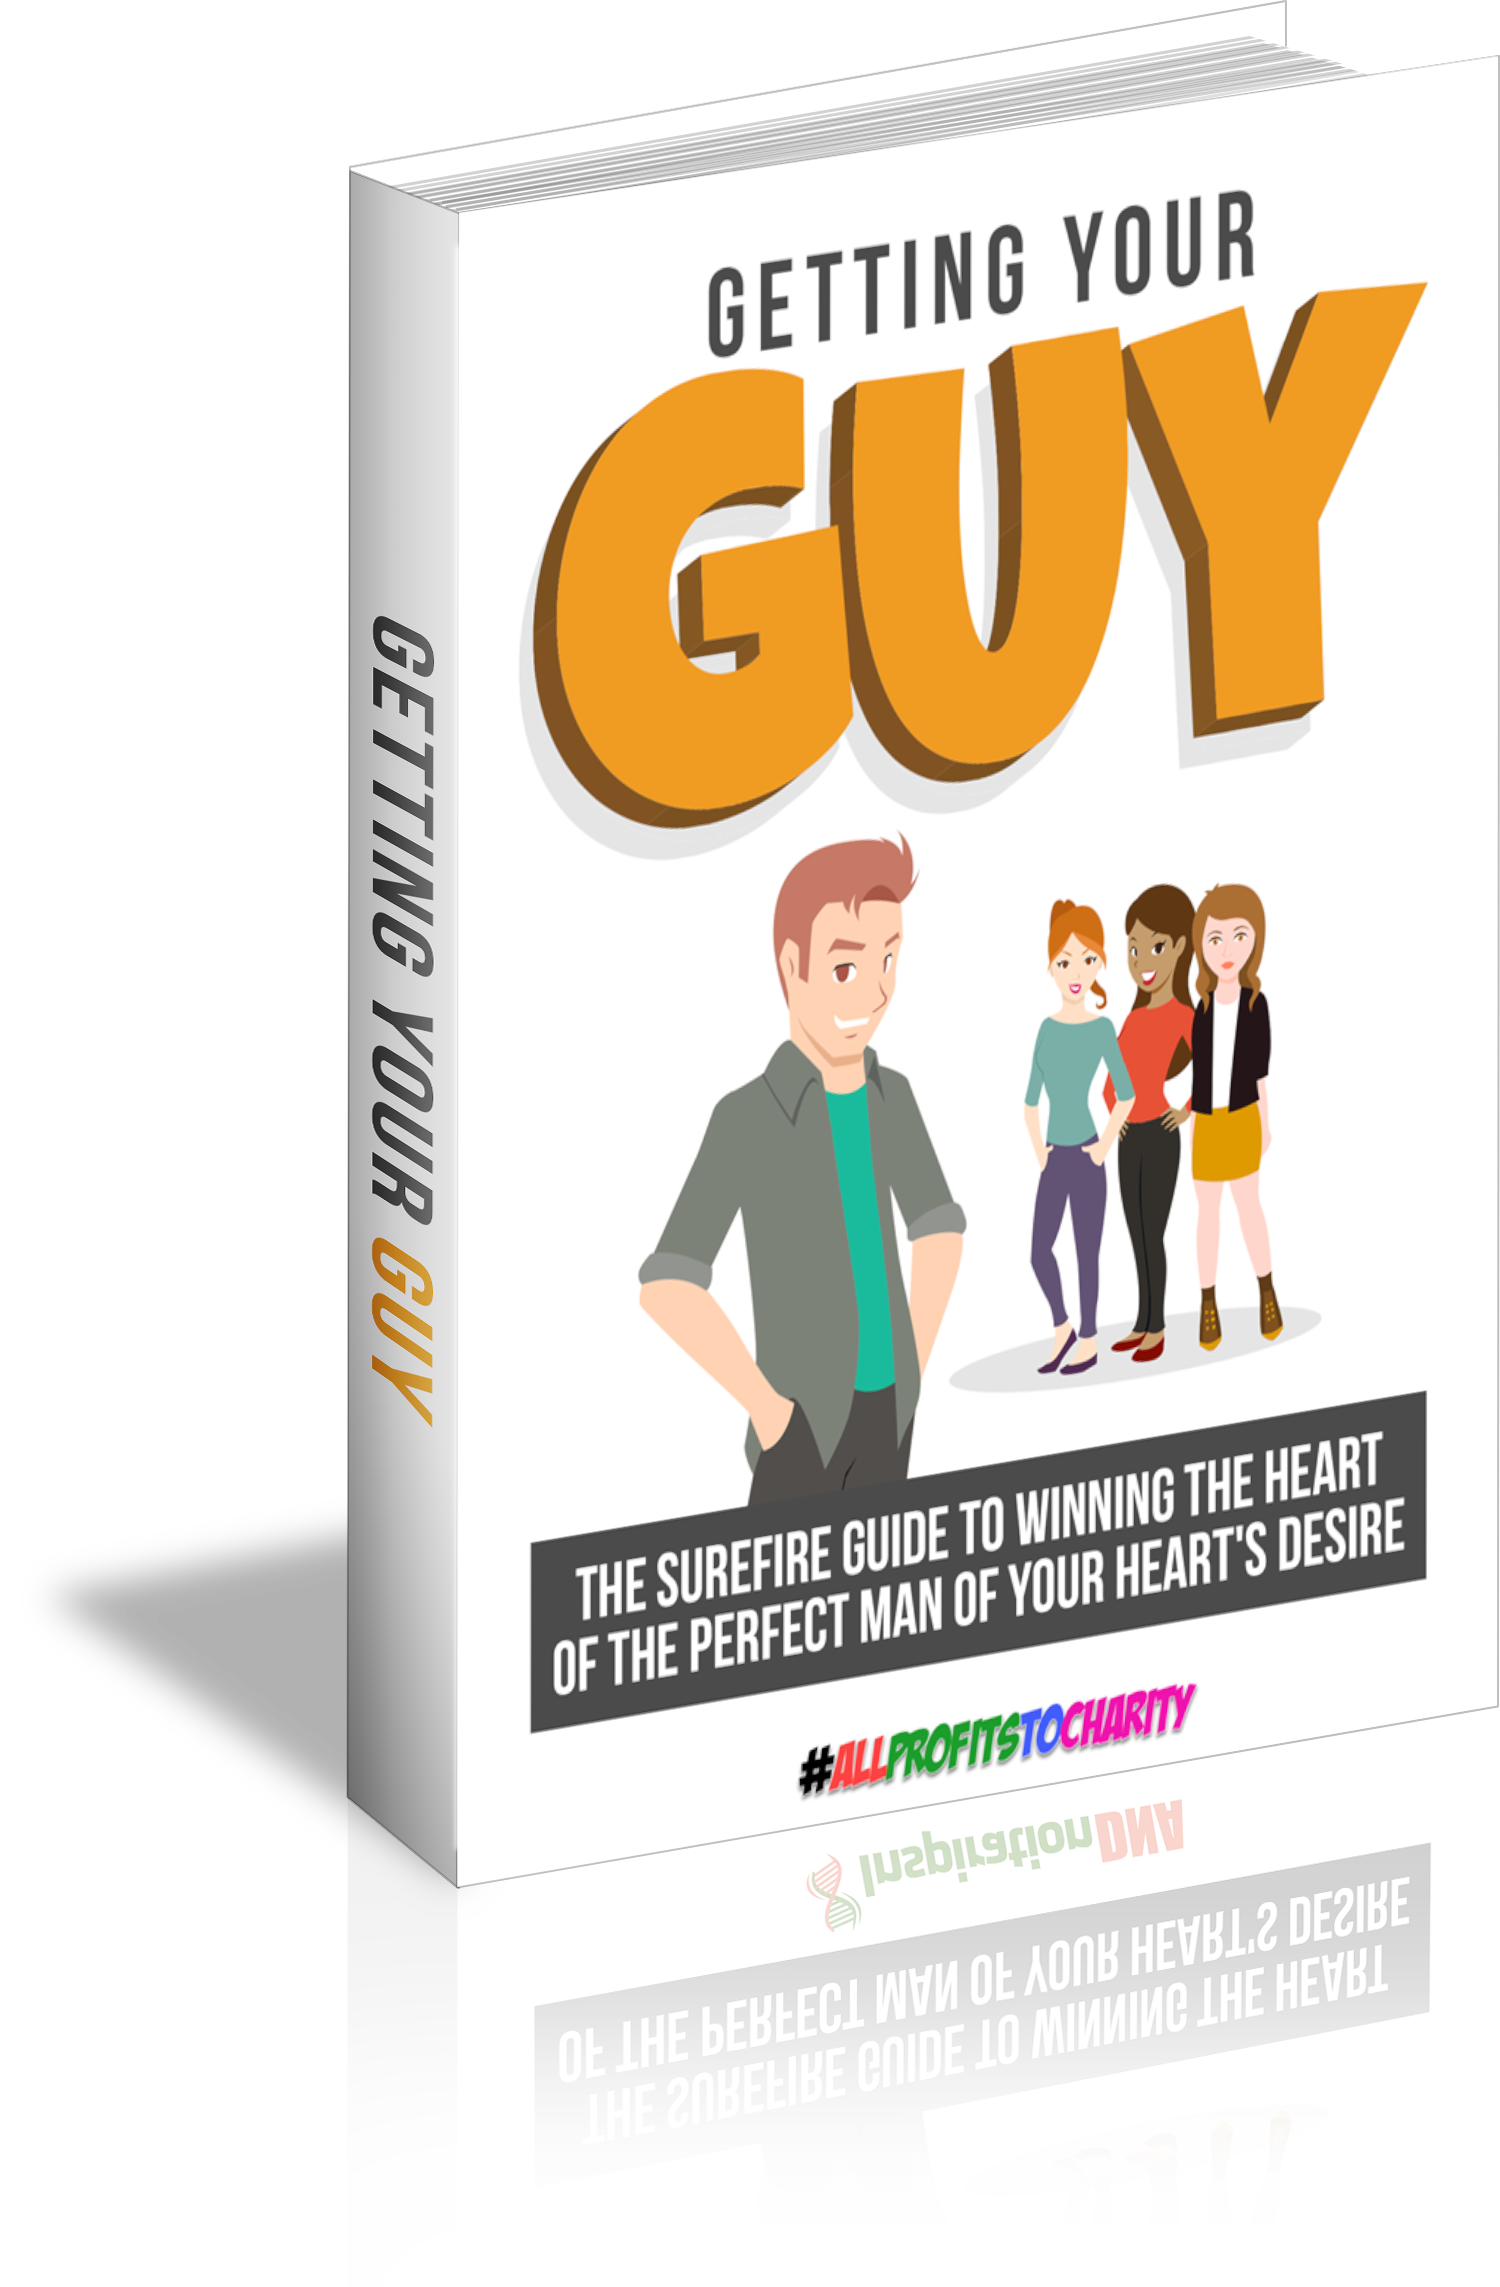 Getting Your Guy cover